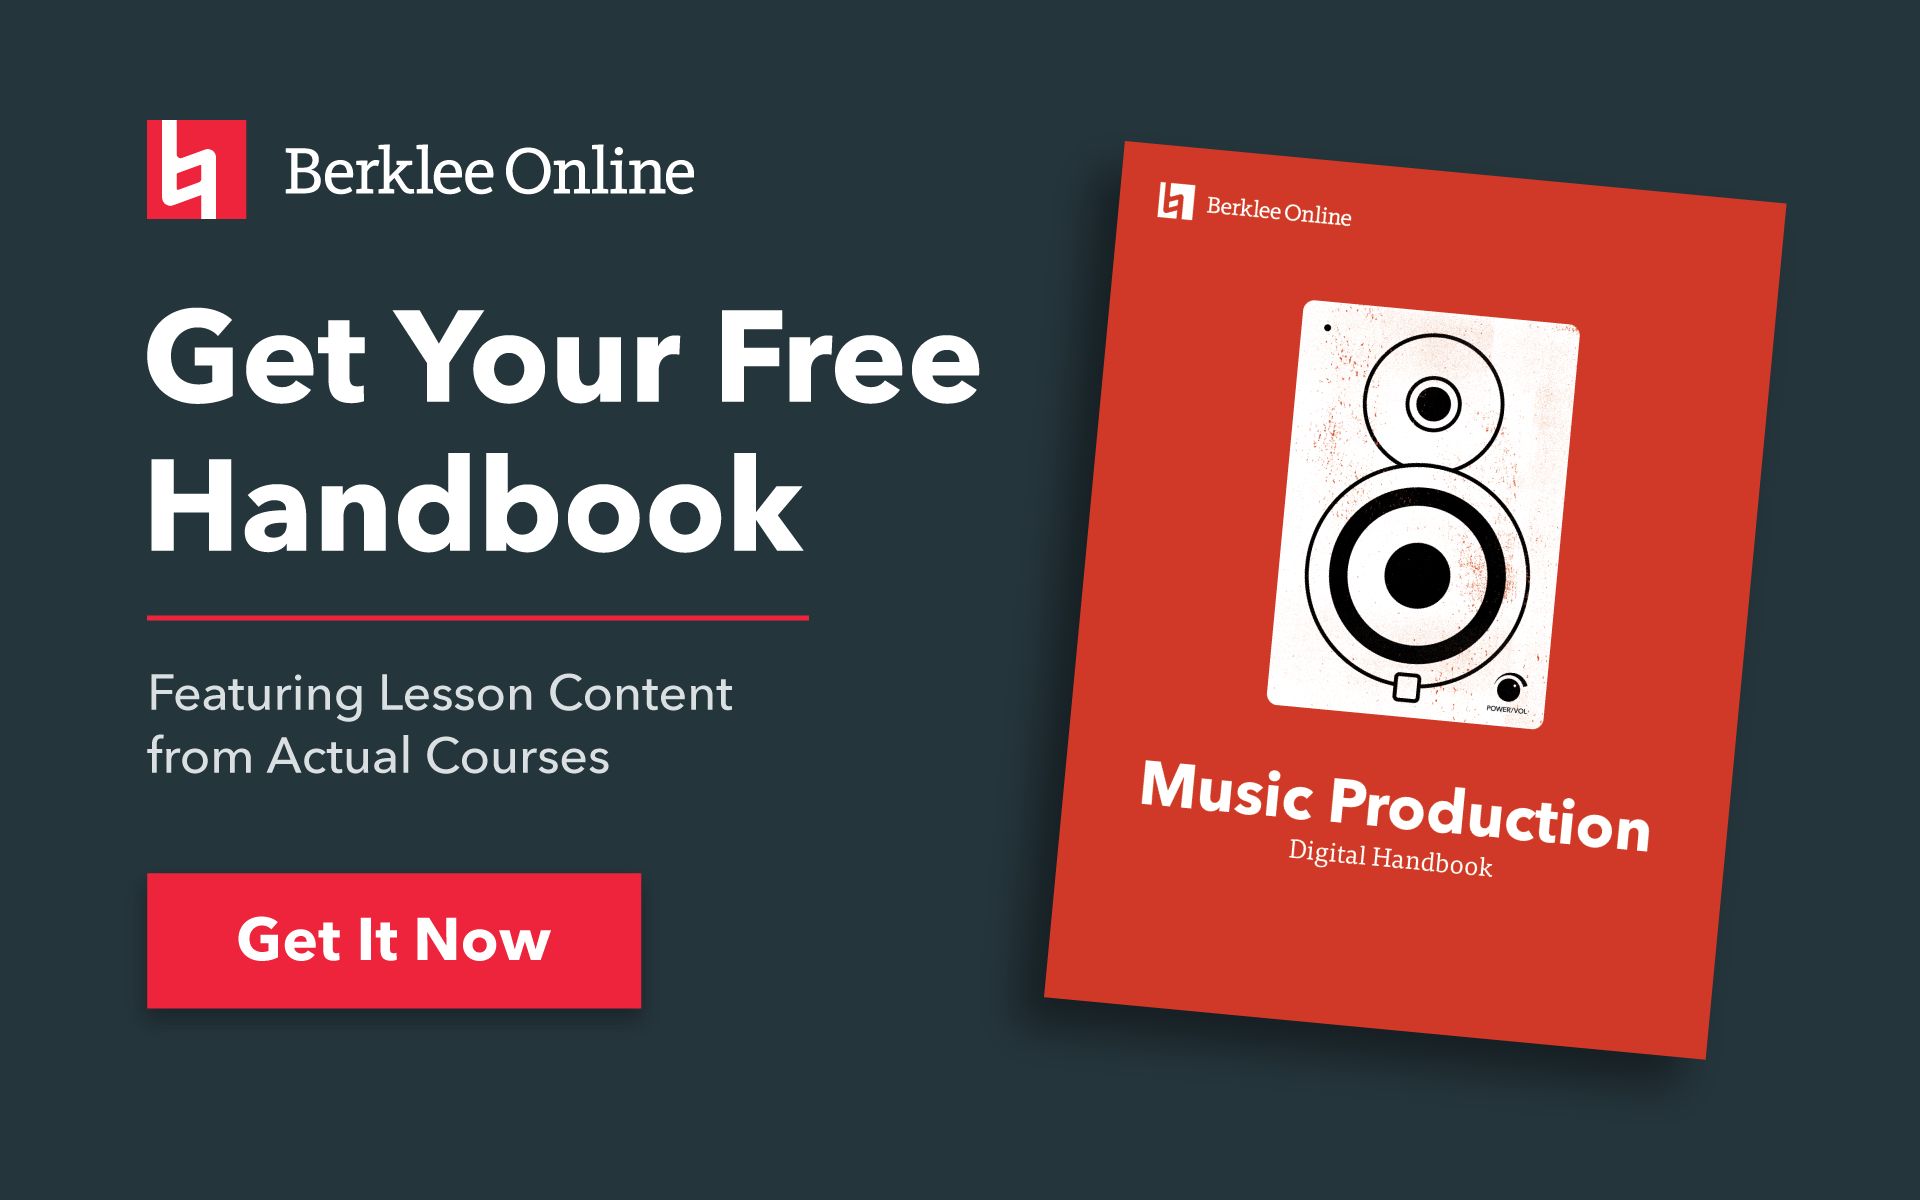 Get your free music production handbook from Berklee Online.